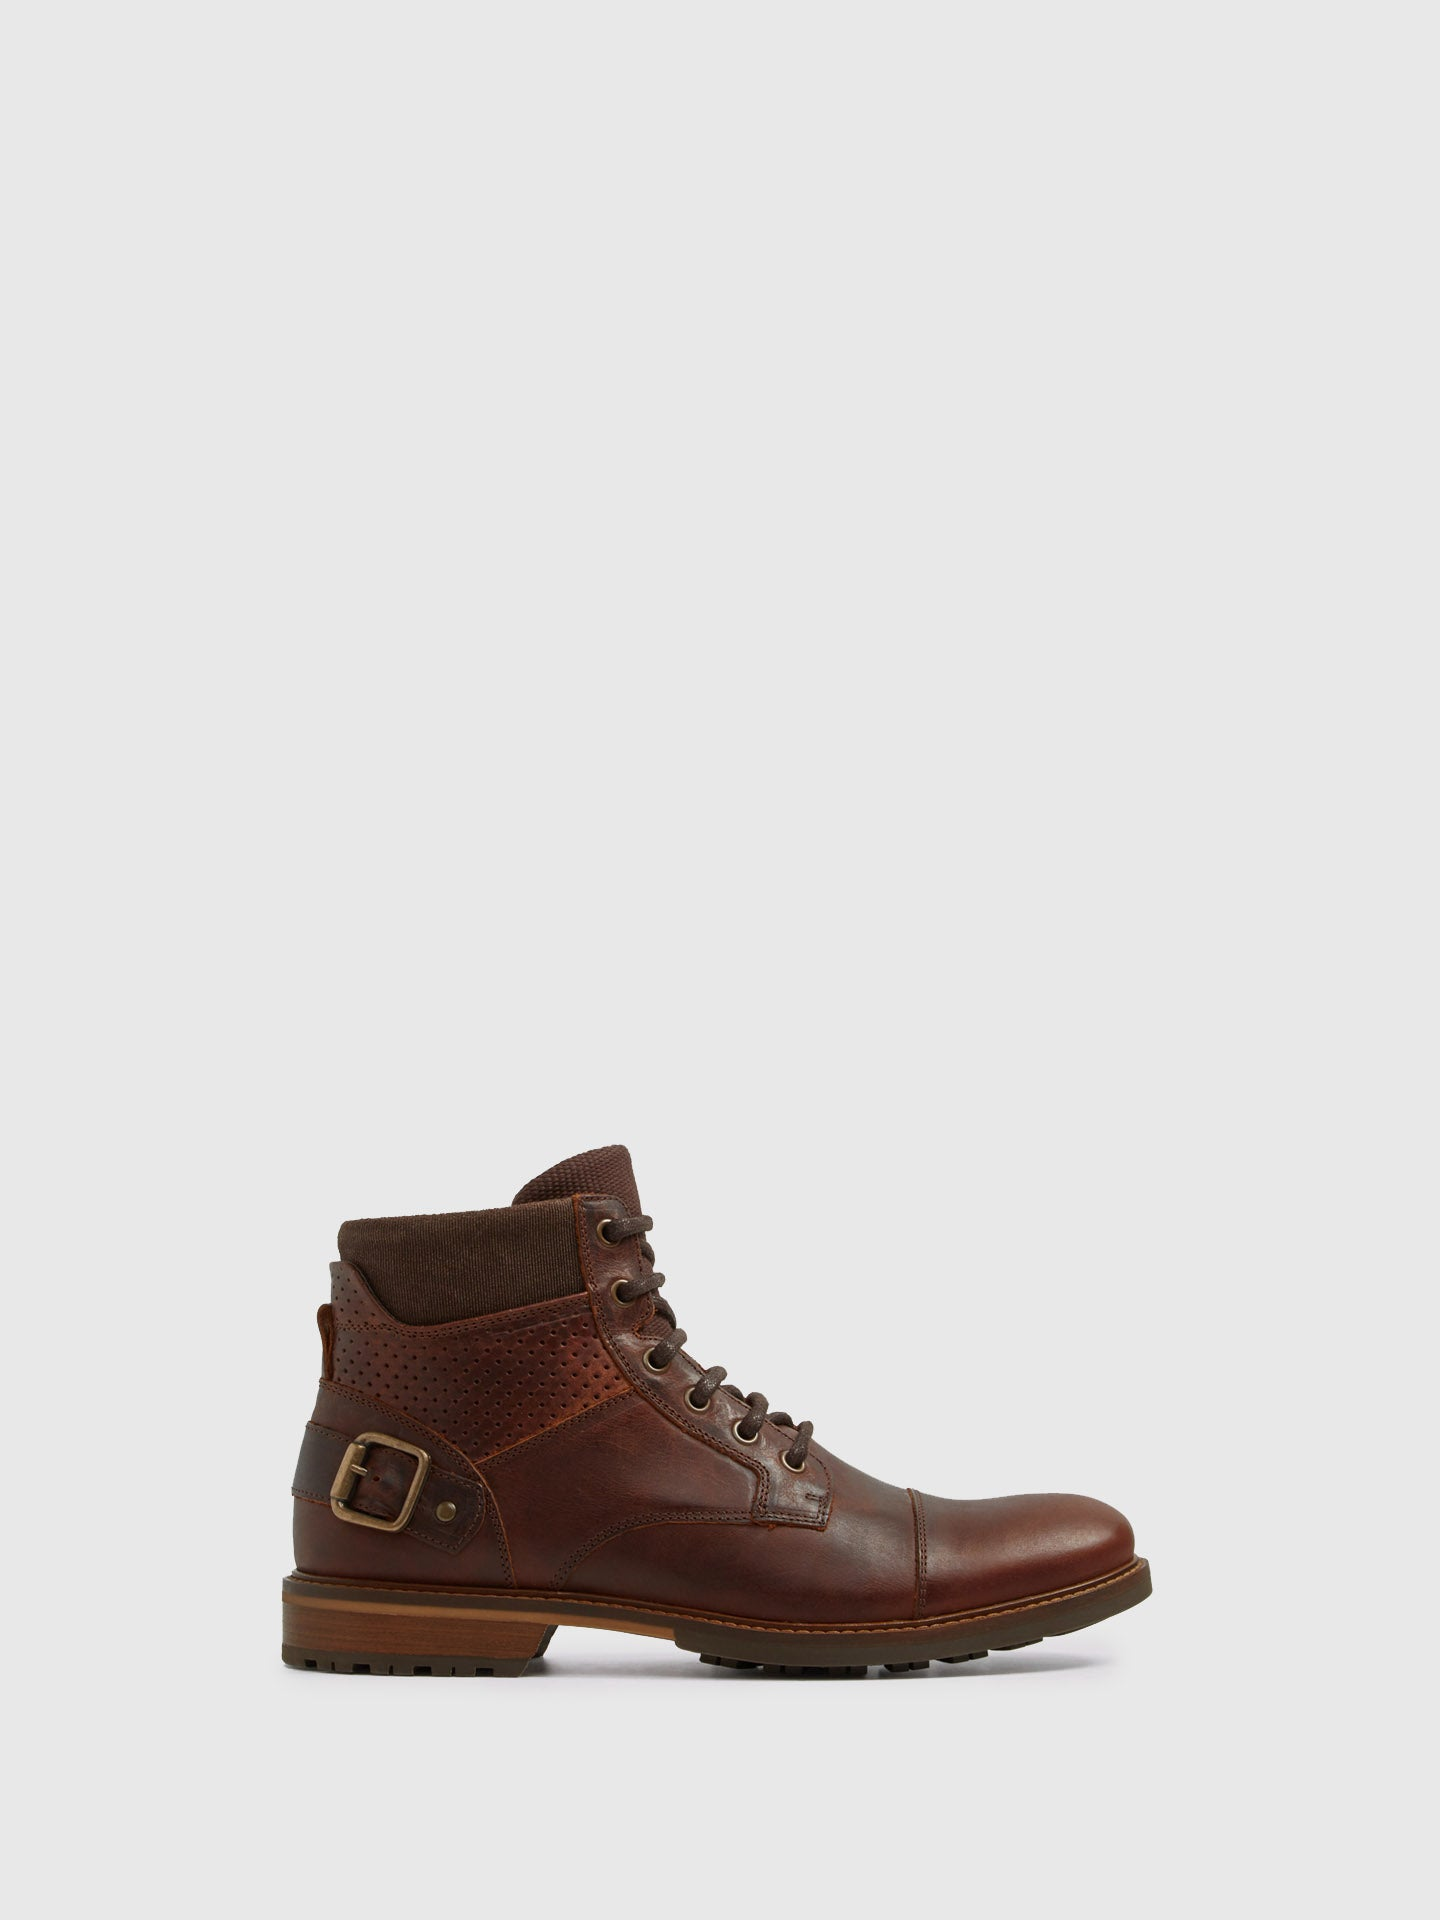 Aldo Maroon Lace-up Boots